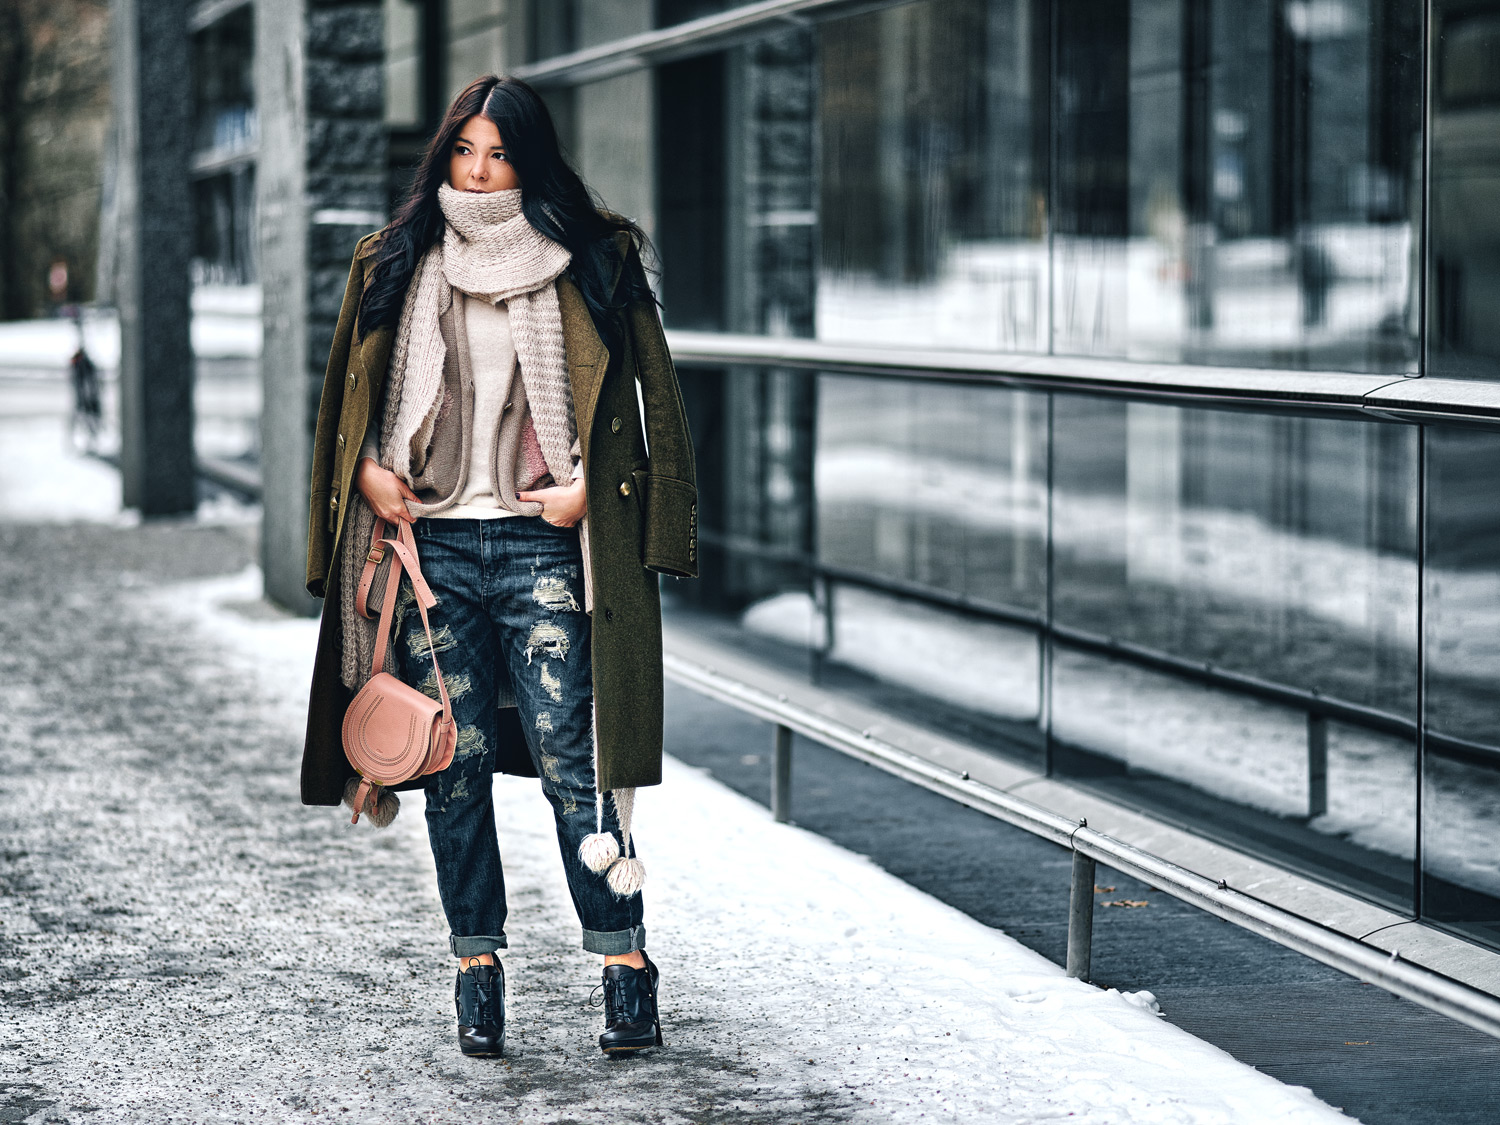 fashionambit-fashionblog-muenchen-modeblog-deutschland-blogger-modeblogger-fashionblogger-bloggerdeutschland-lifestyleblog-munich-style-blog-layering-look-fashion-week